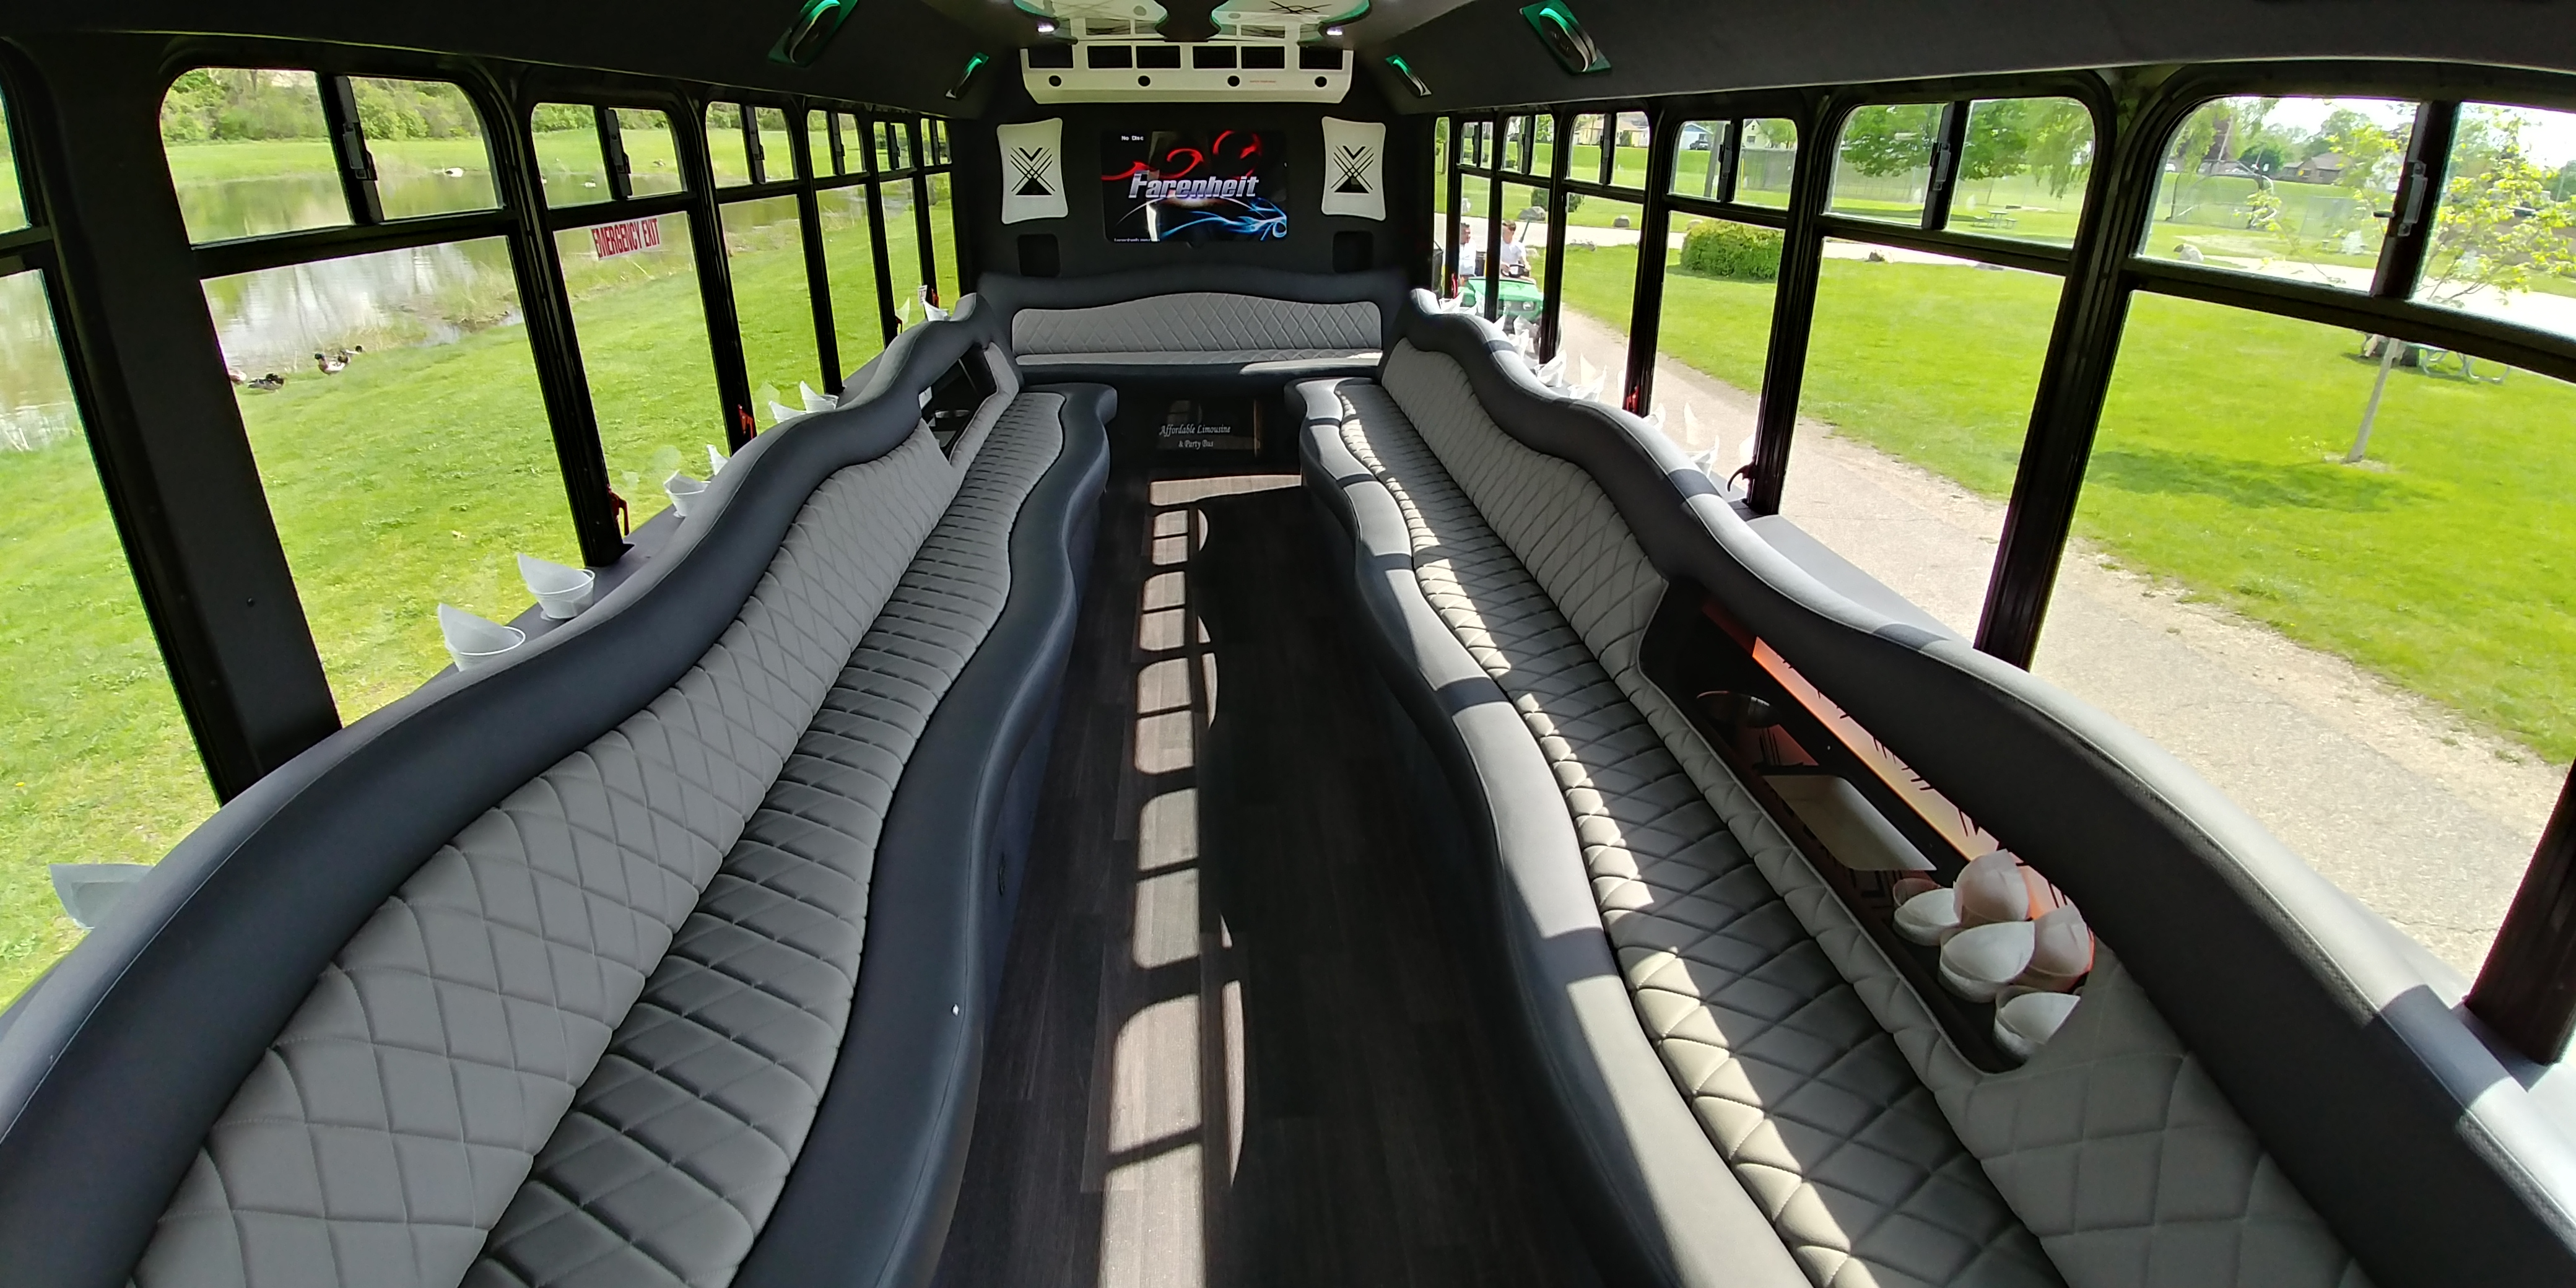 28 Passenger Luxury Limo Bus Interior 2